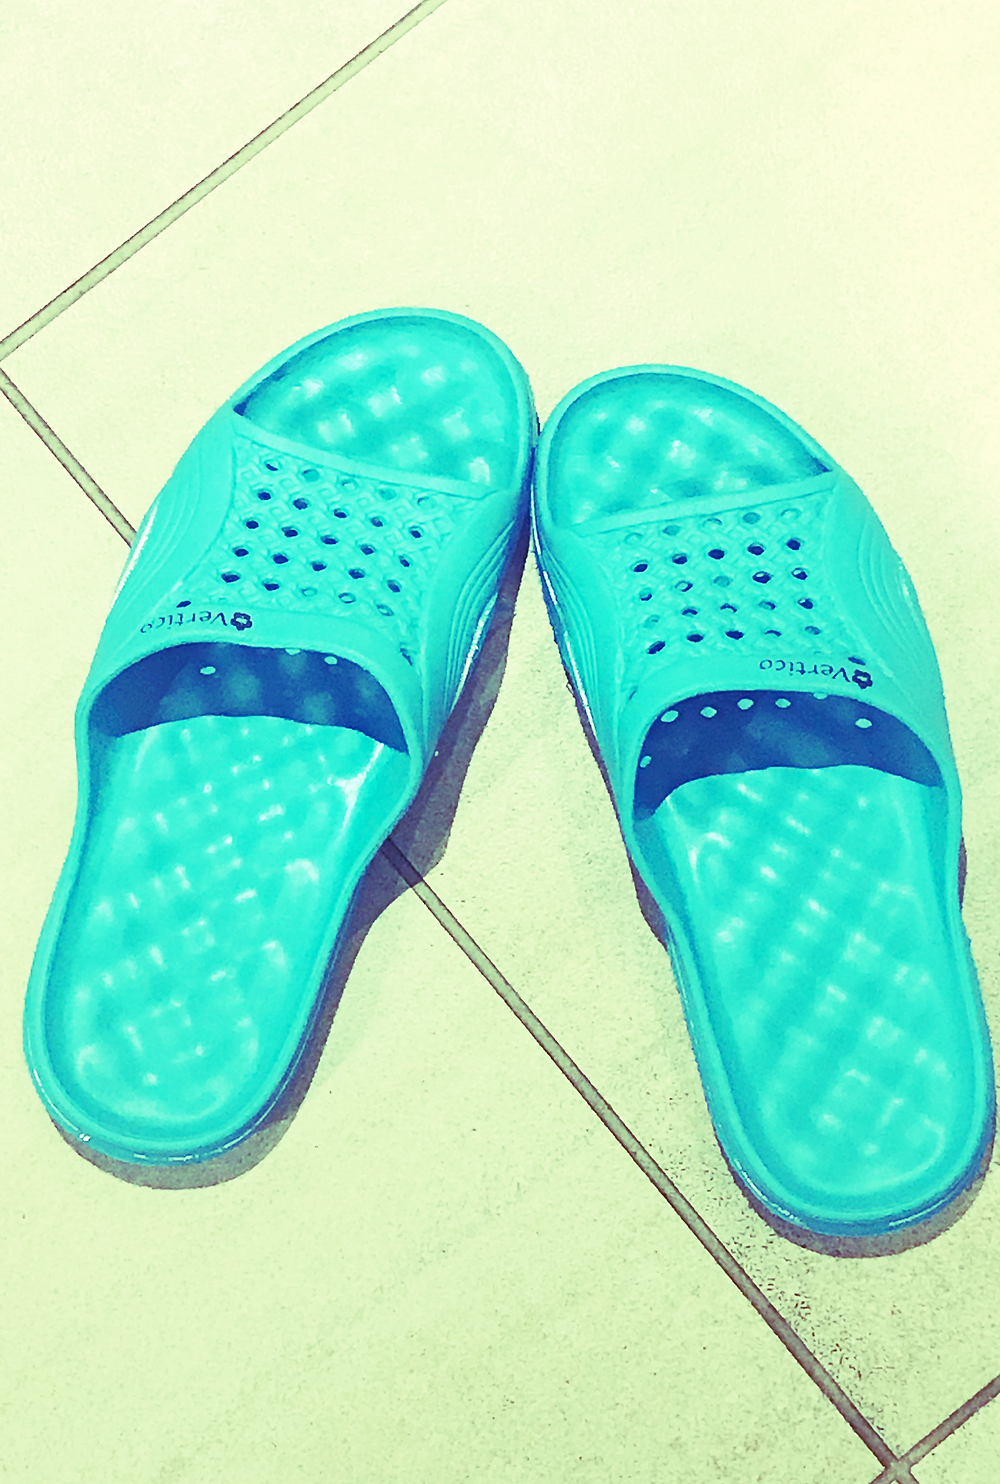 A picture of Kita the Explorer's shower flip flops